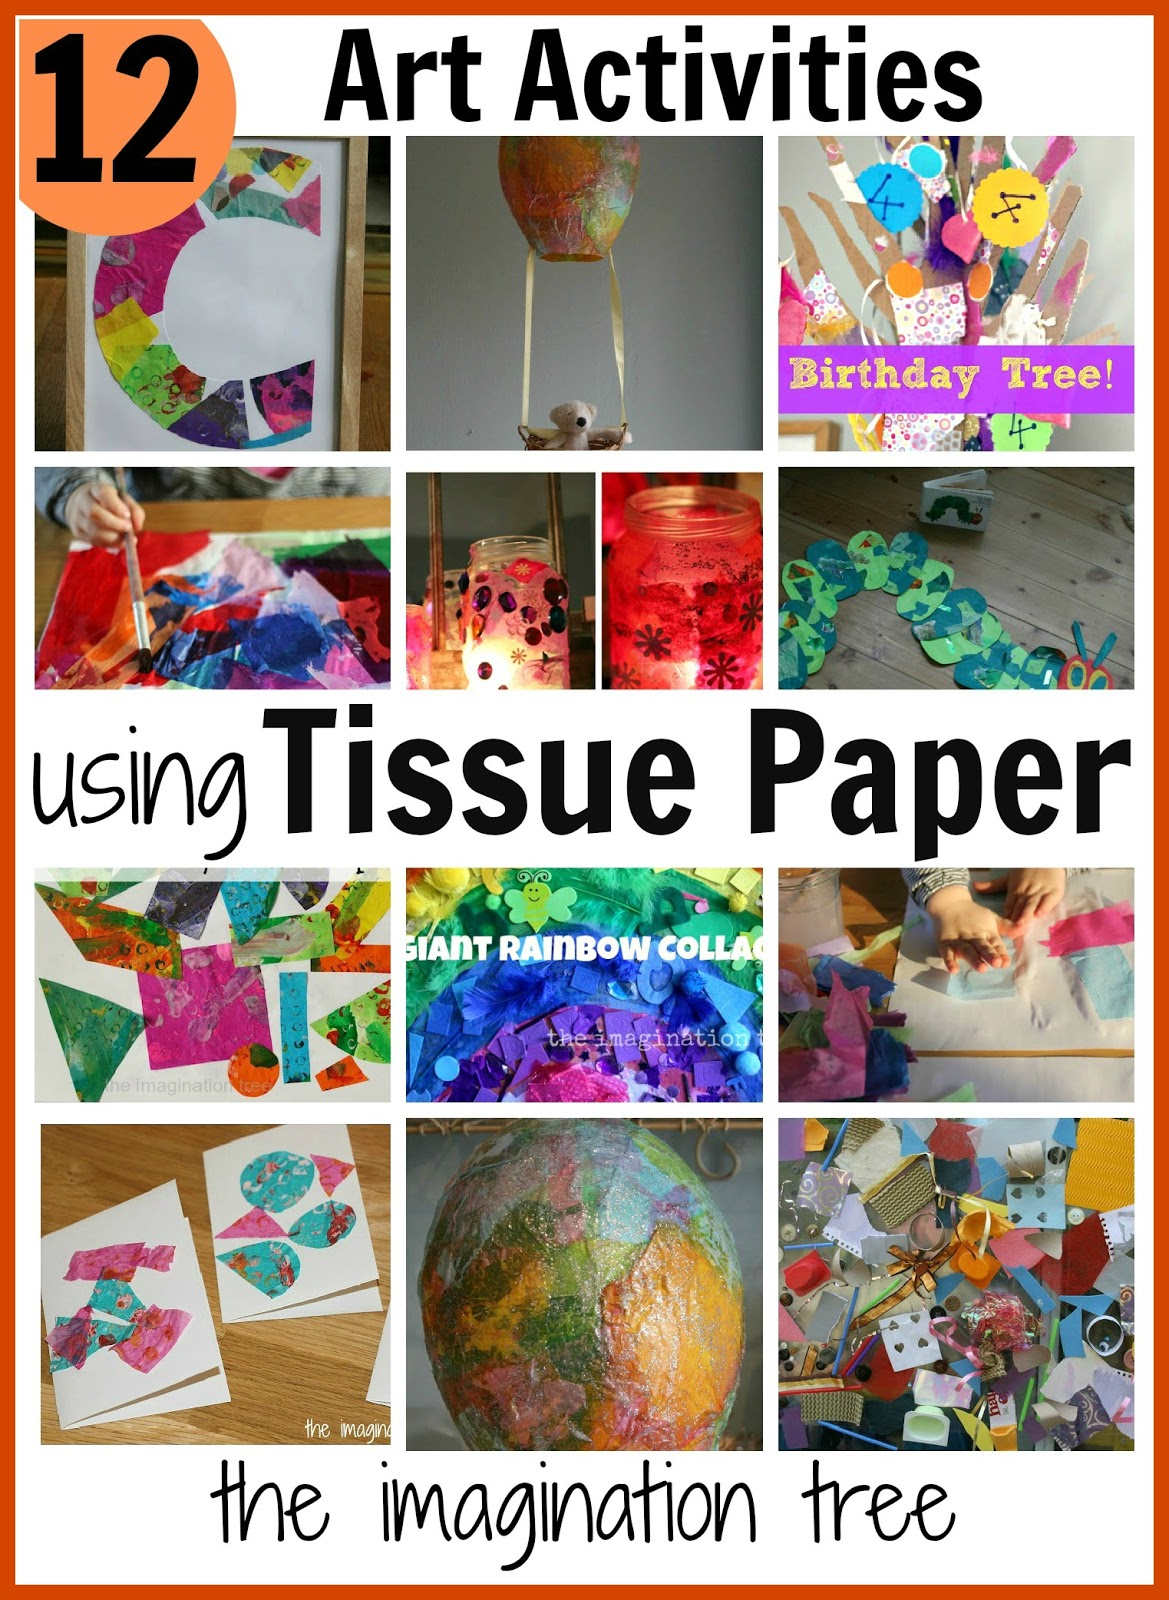 12 Art Activities Using Tissue Paper